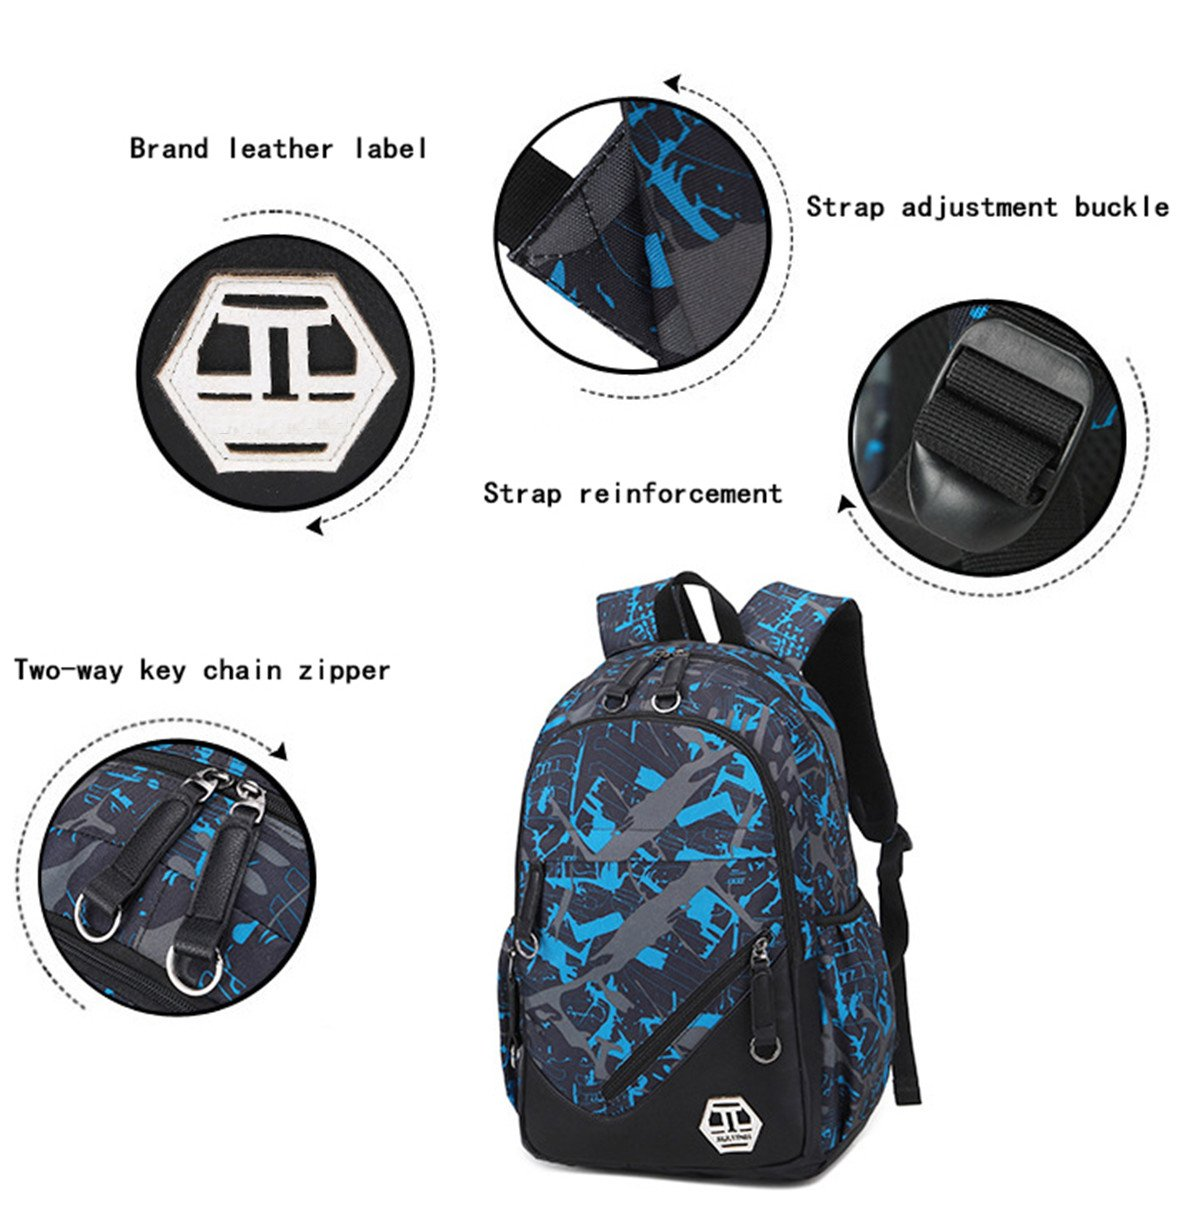 5a456e312a5d mioy Teenager School Bag Canvas Printing Backpack Durable Student ...